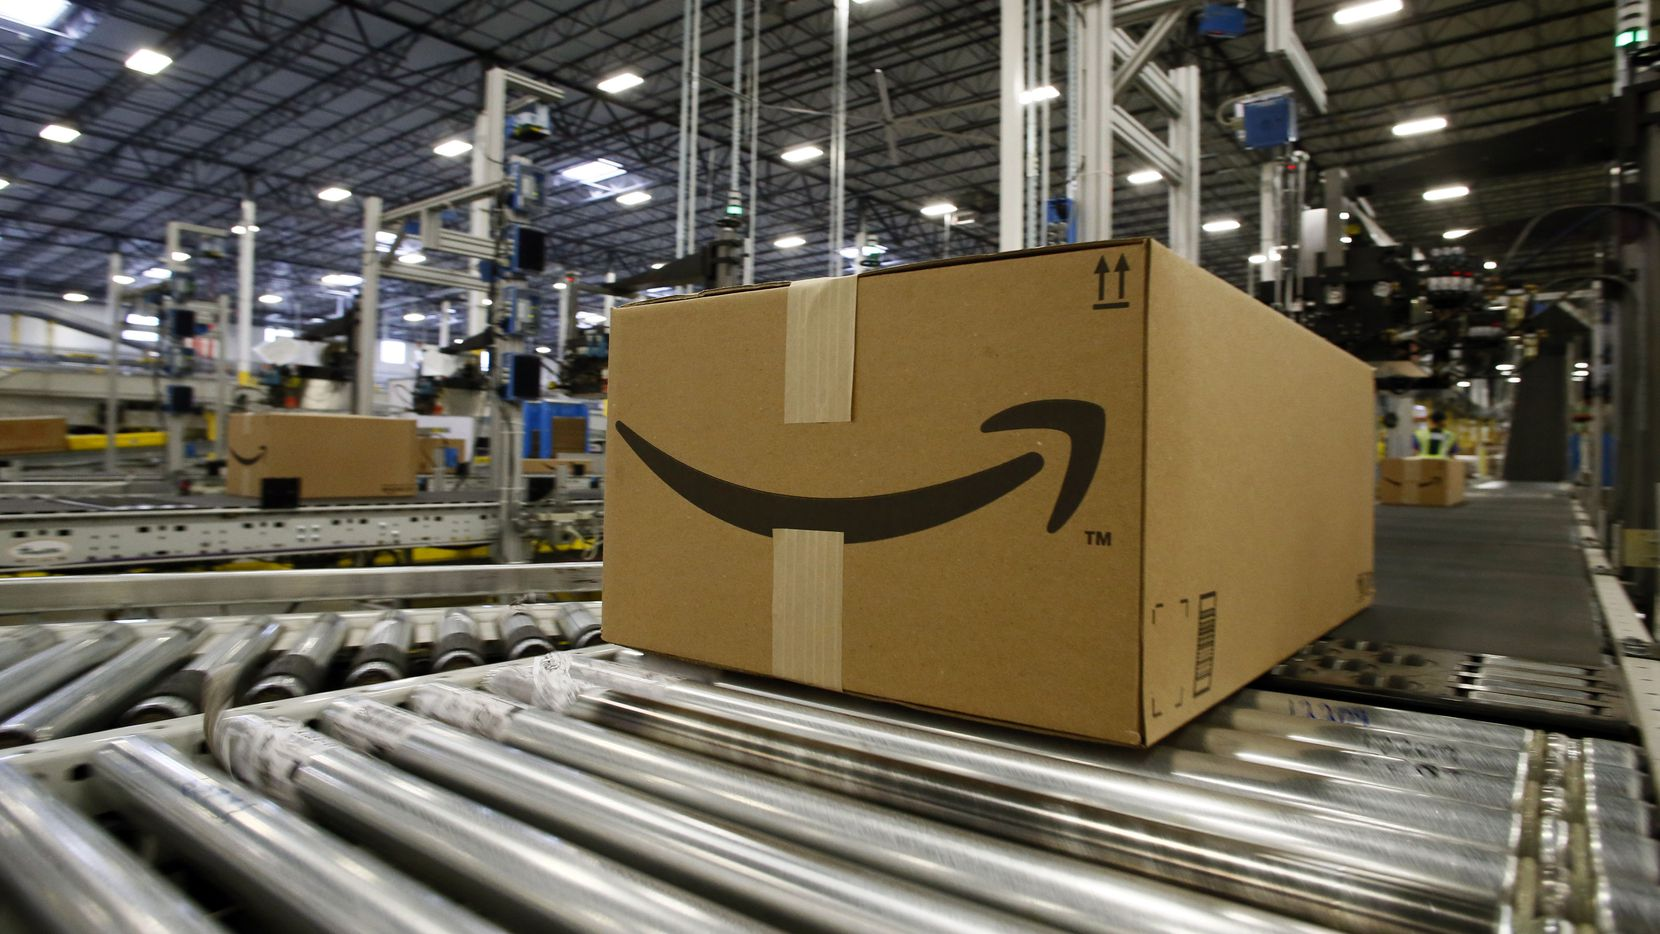 Amazon is ready to ship 50,000 new jobs to some lucky city willing to bid for its new headquarters.